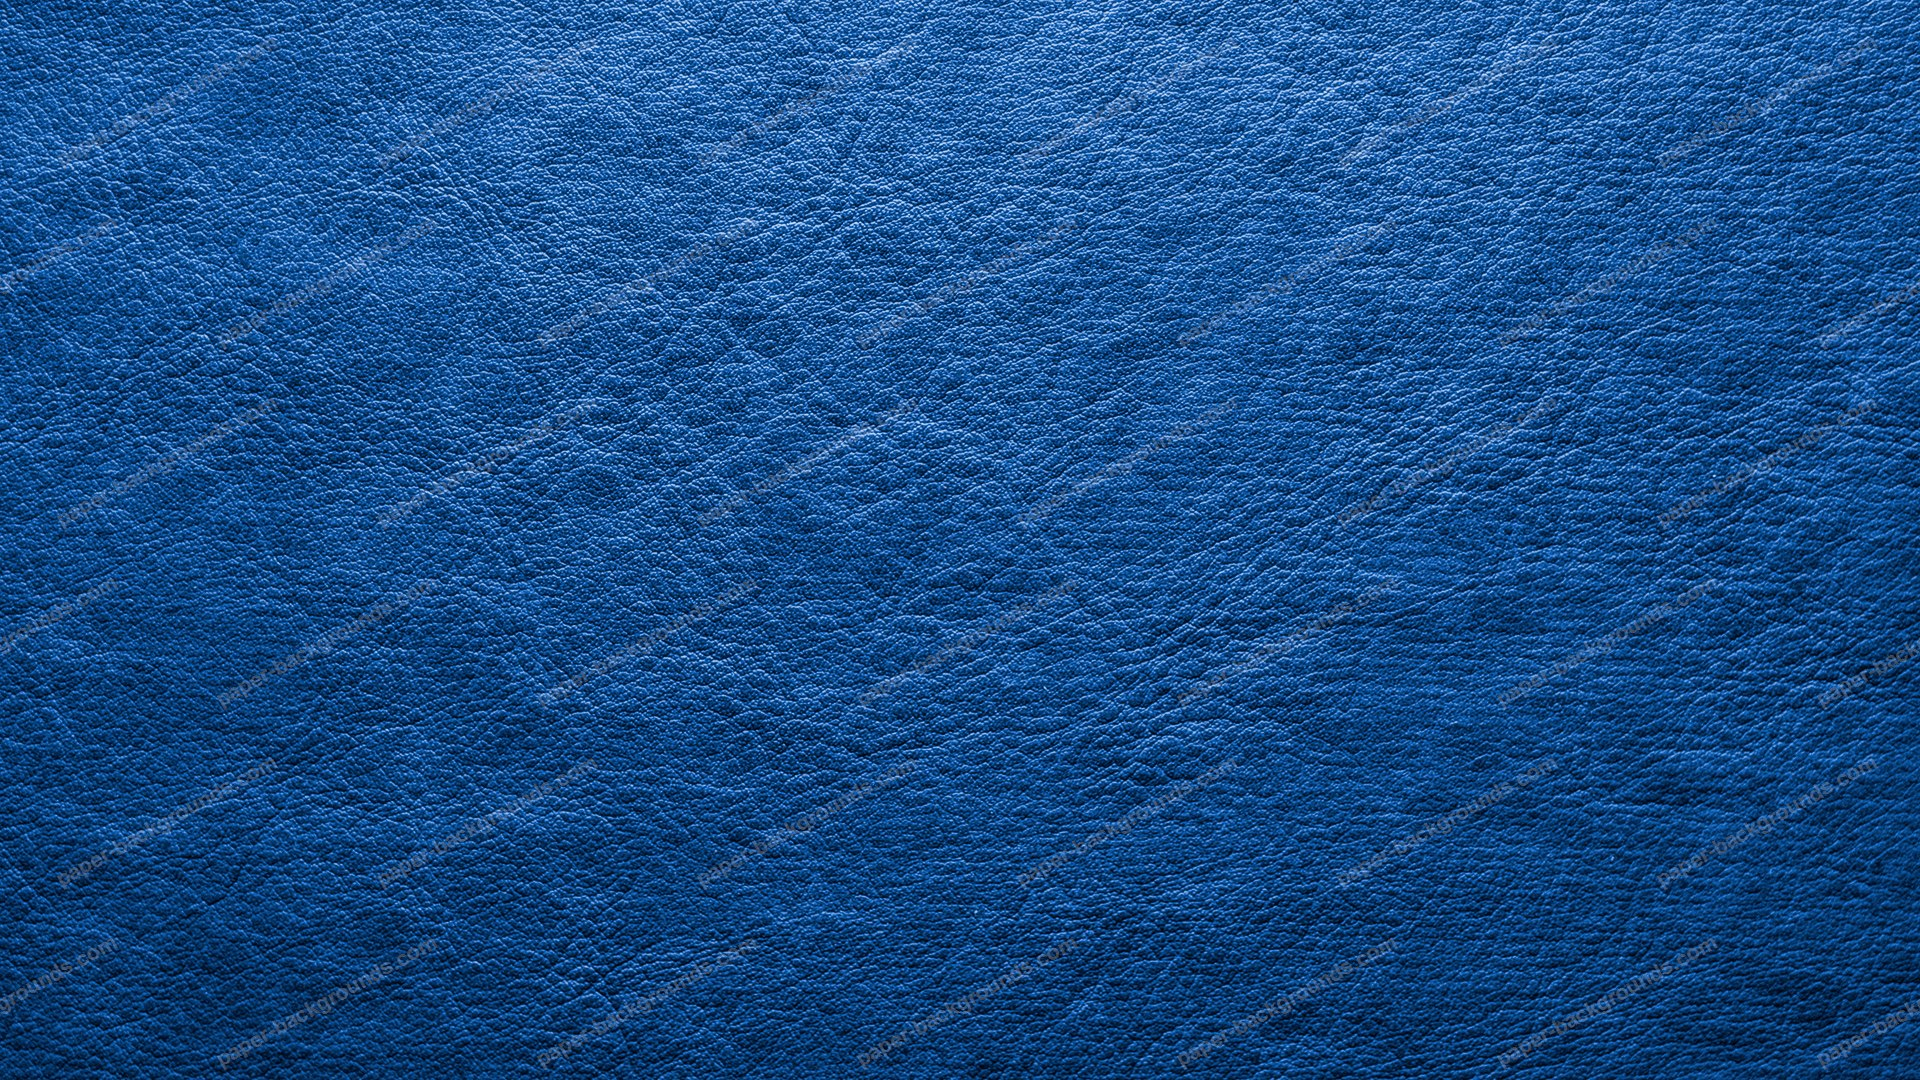 Hd Abstract Blue Background: Paper Backgrounds